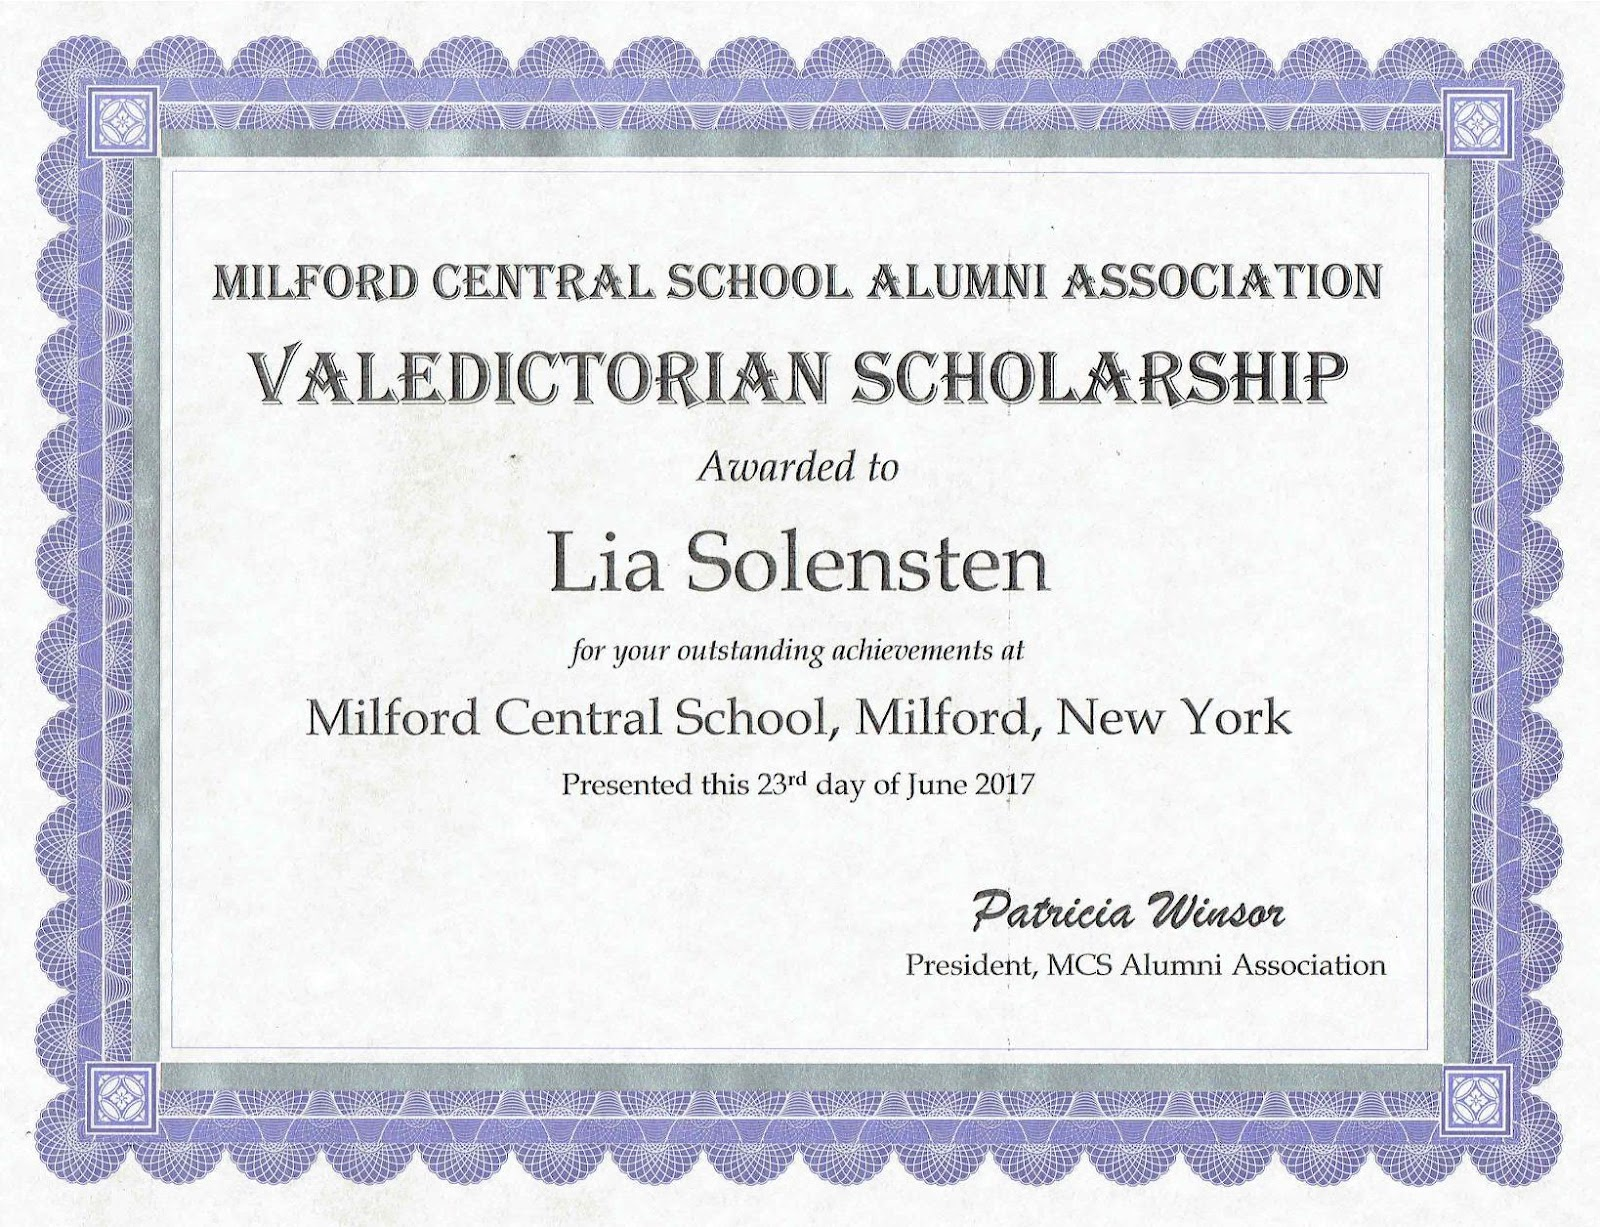 Valedictorian Certificate 2017 rotated-page-001.jpg